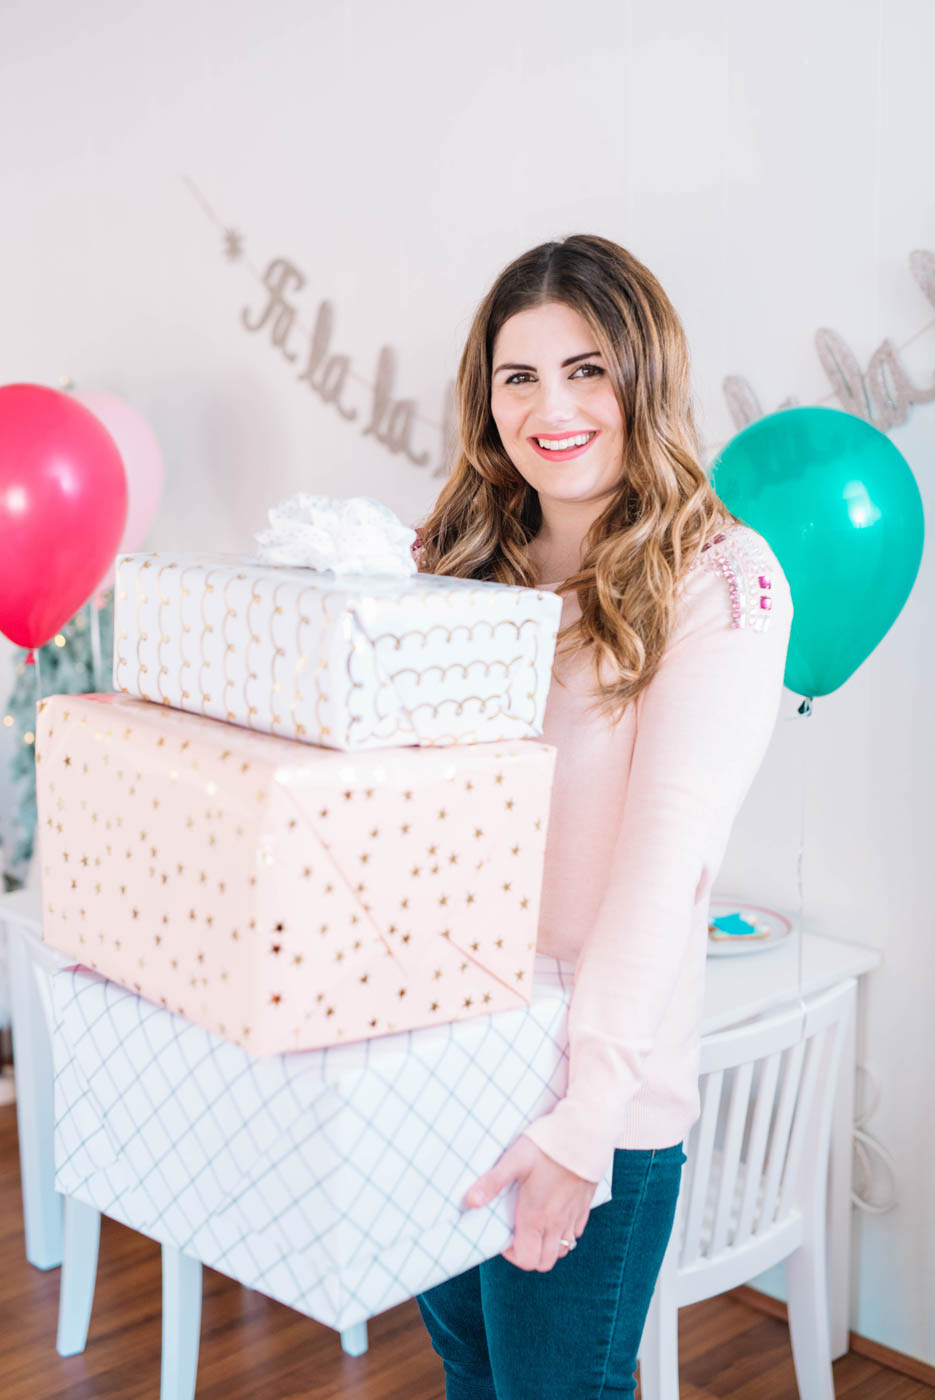 STYLISH WRAPPING PAPER & GIFTS TO BUY ASAP FROM SUGAR PAPER